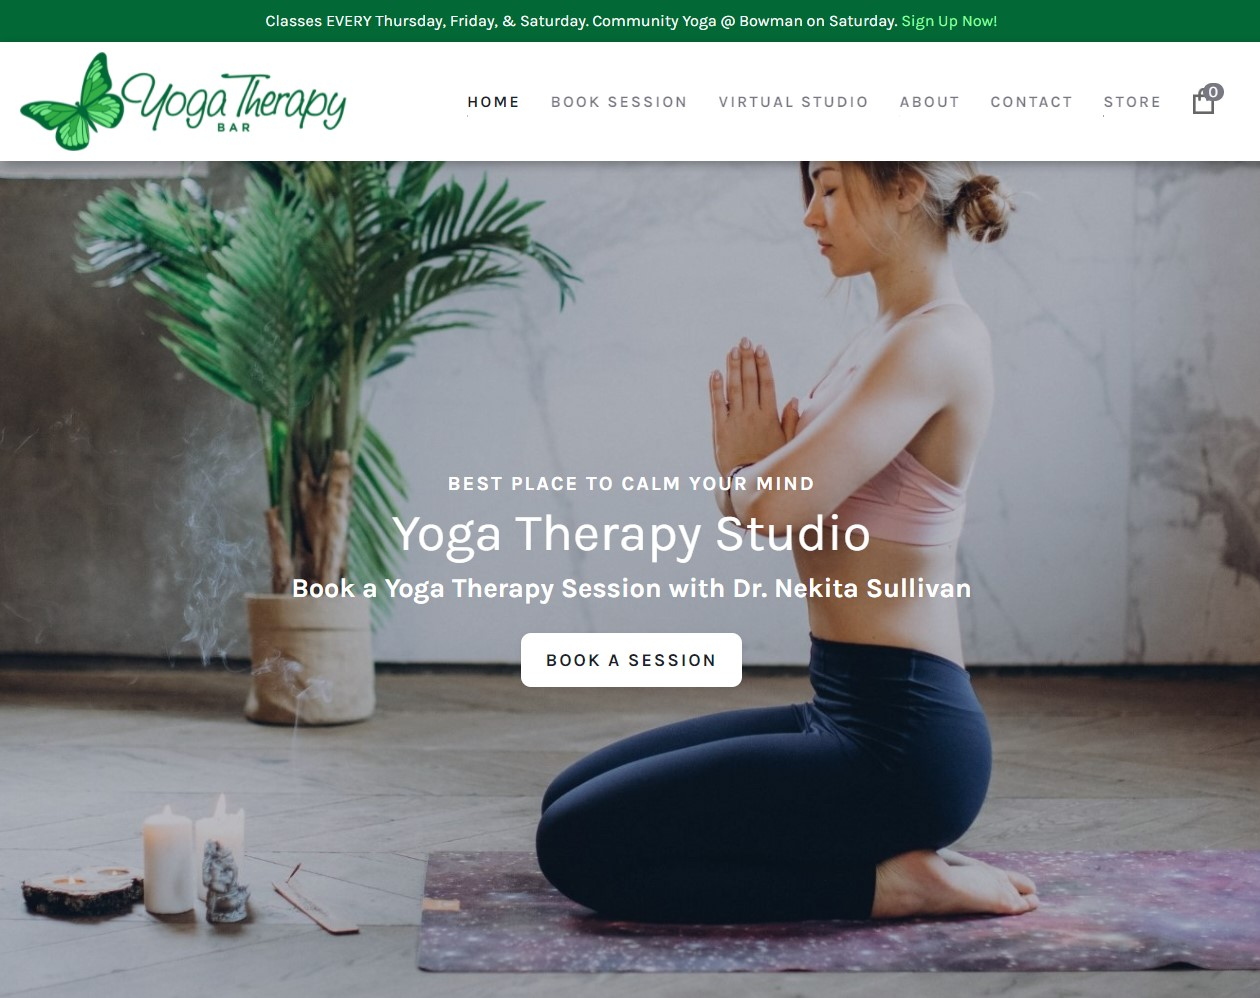 Screenshot of the Yoga Therapy Bar Website